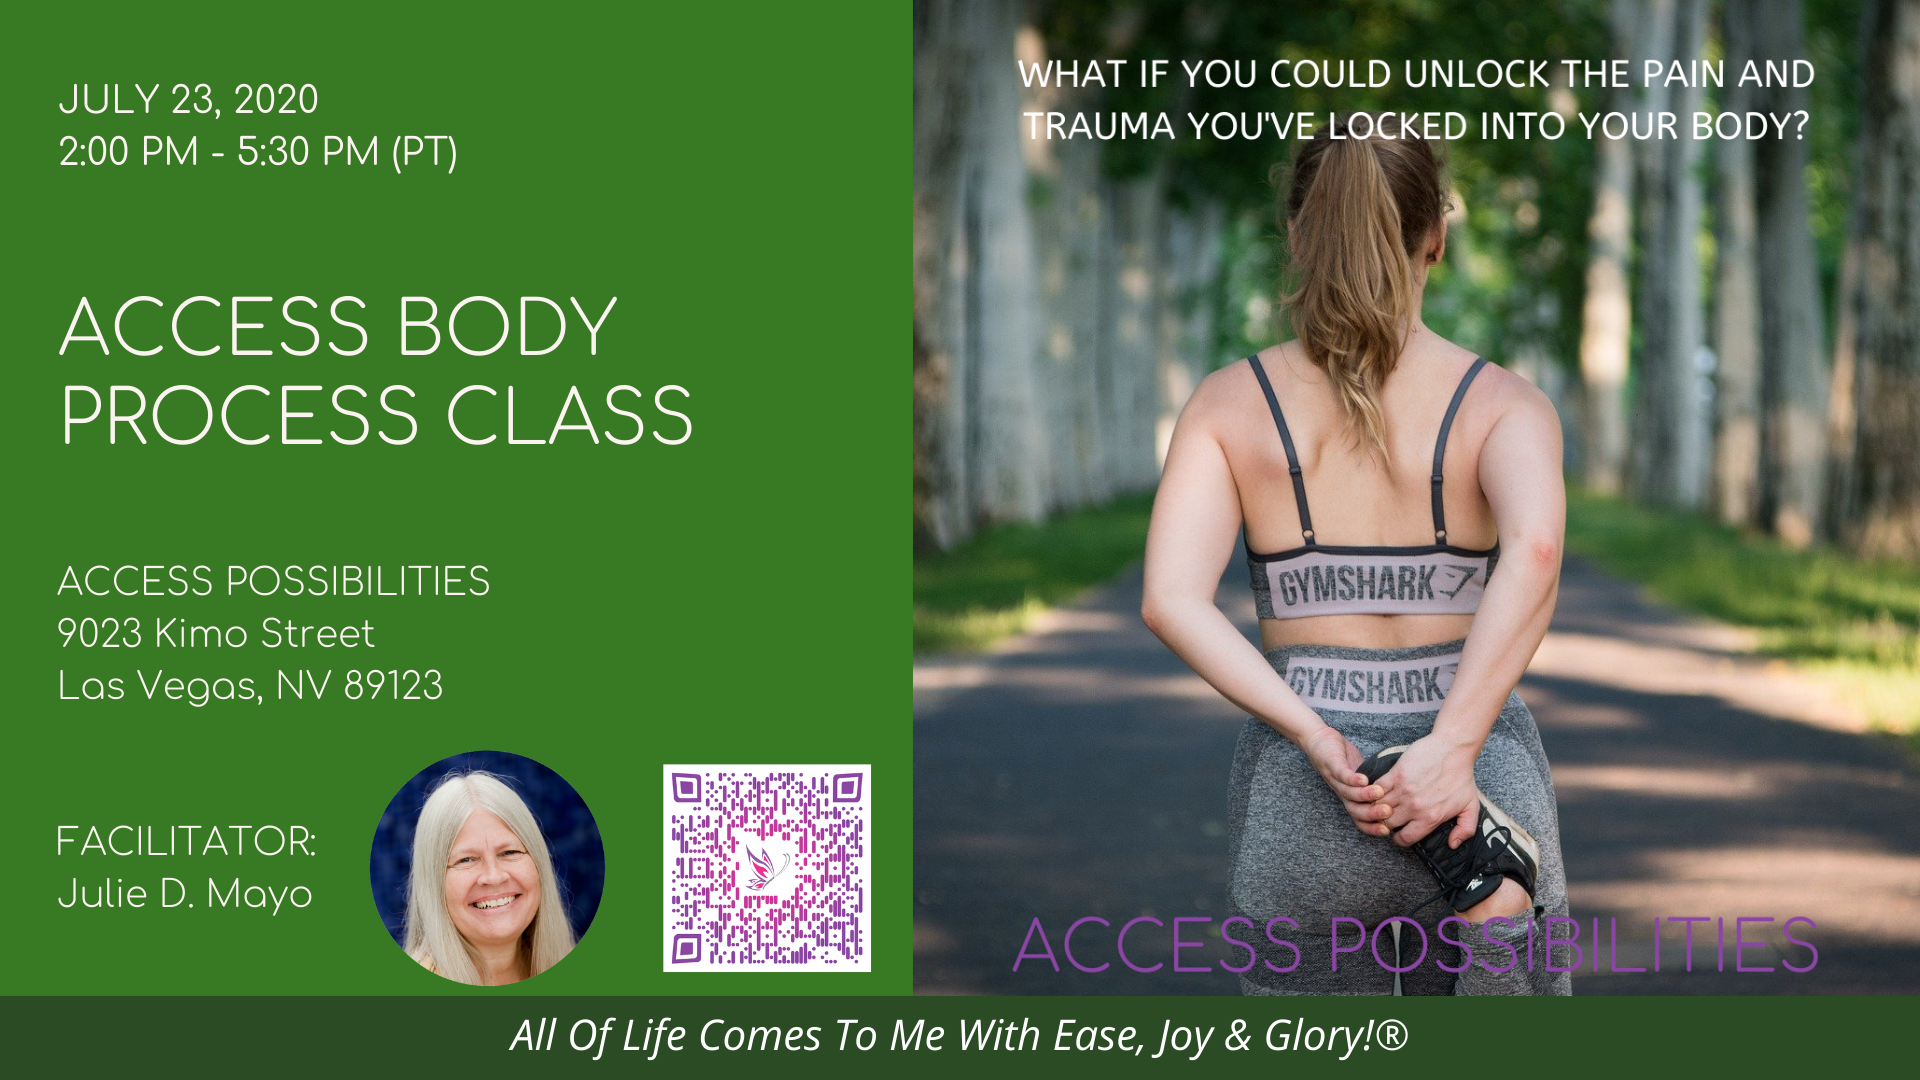 Access Body Process Class with Julie D. Mayo | Jul 23 PM | Access Possibilities